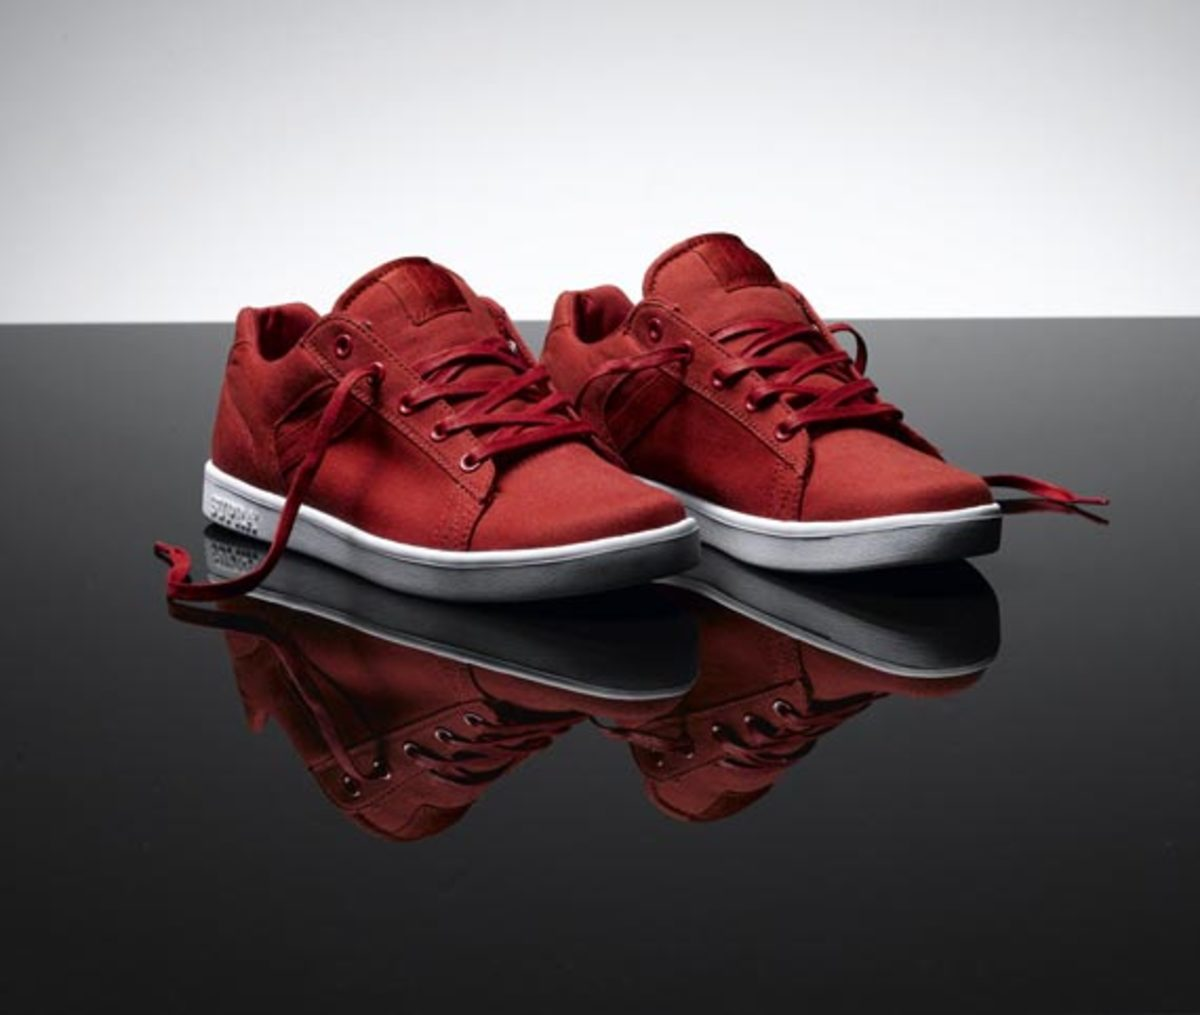 supra-red-canvas-pack-01